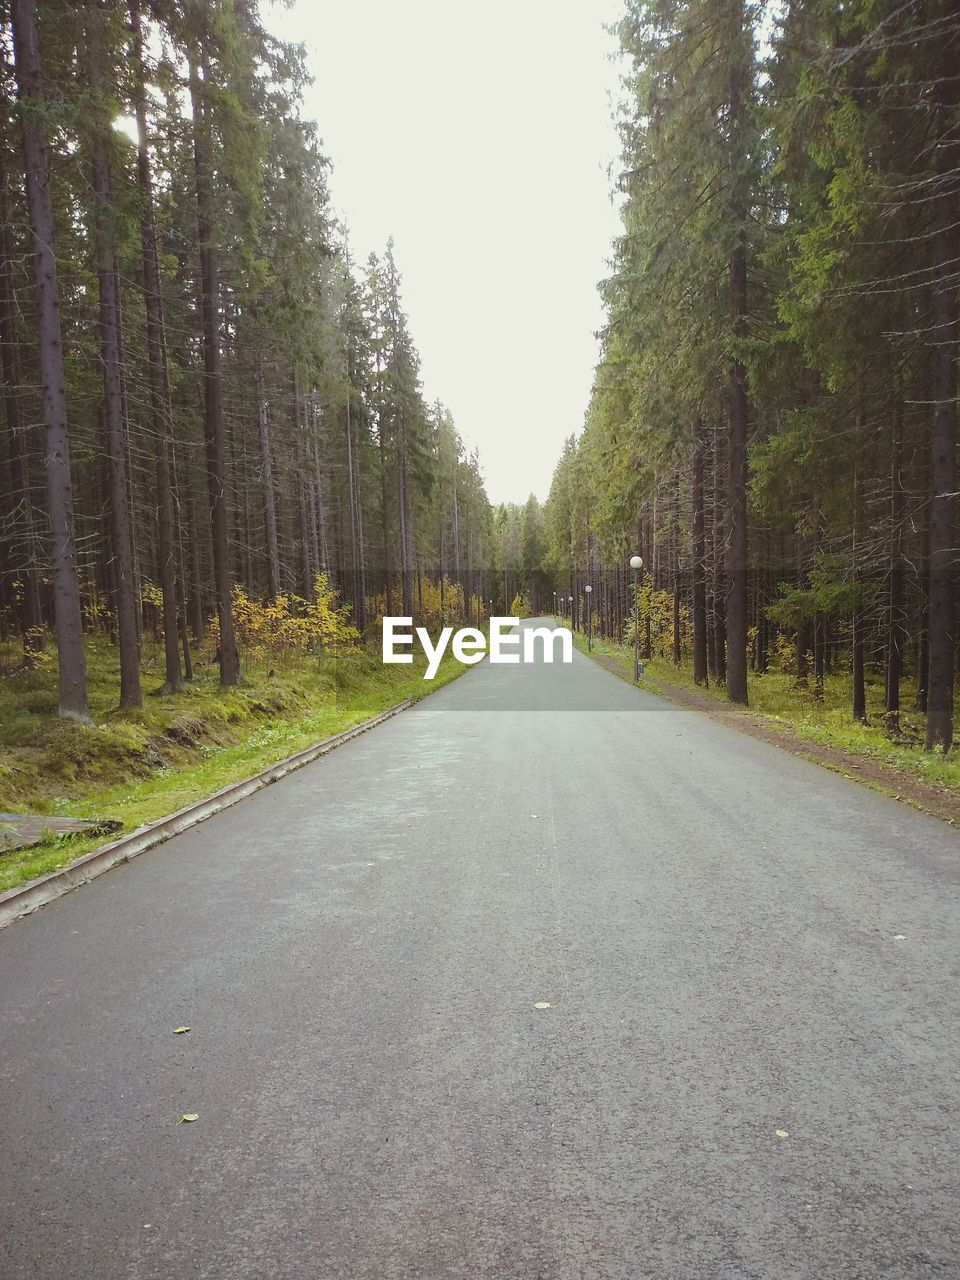 EMPTY ROAD AMIDST TREES IN FOREST